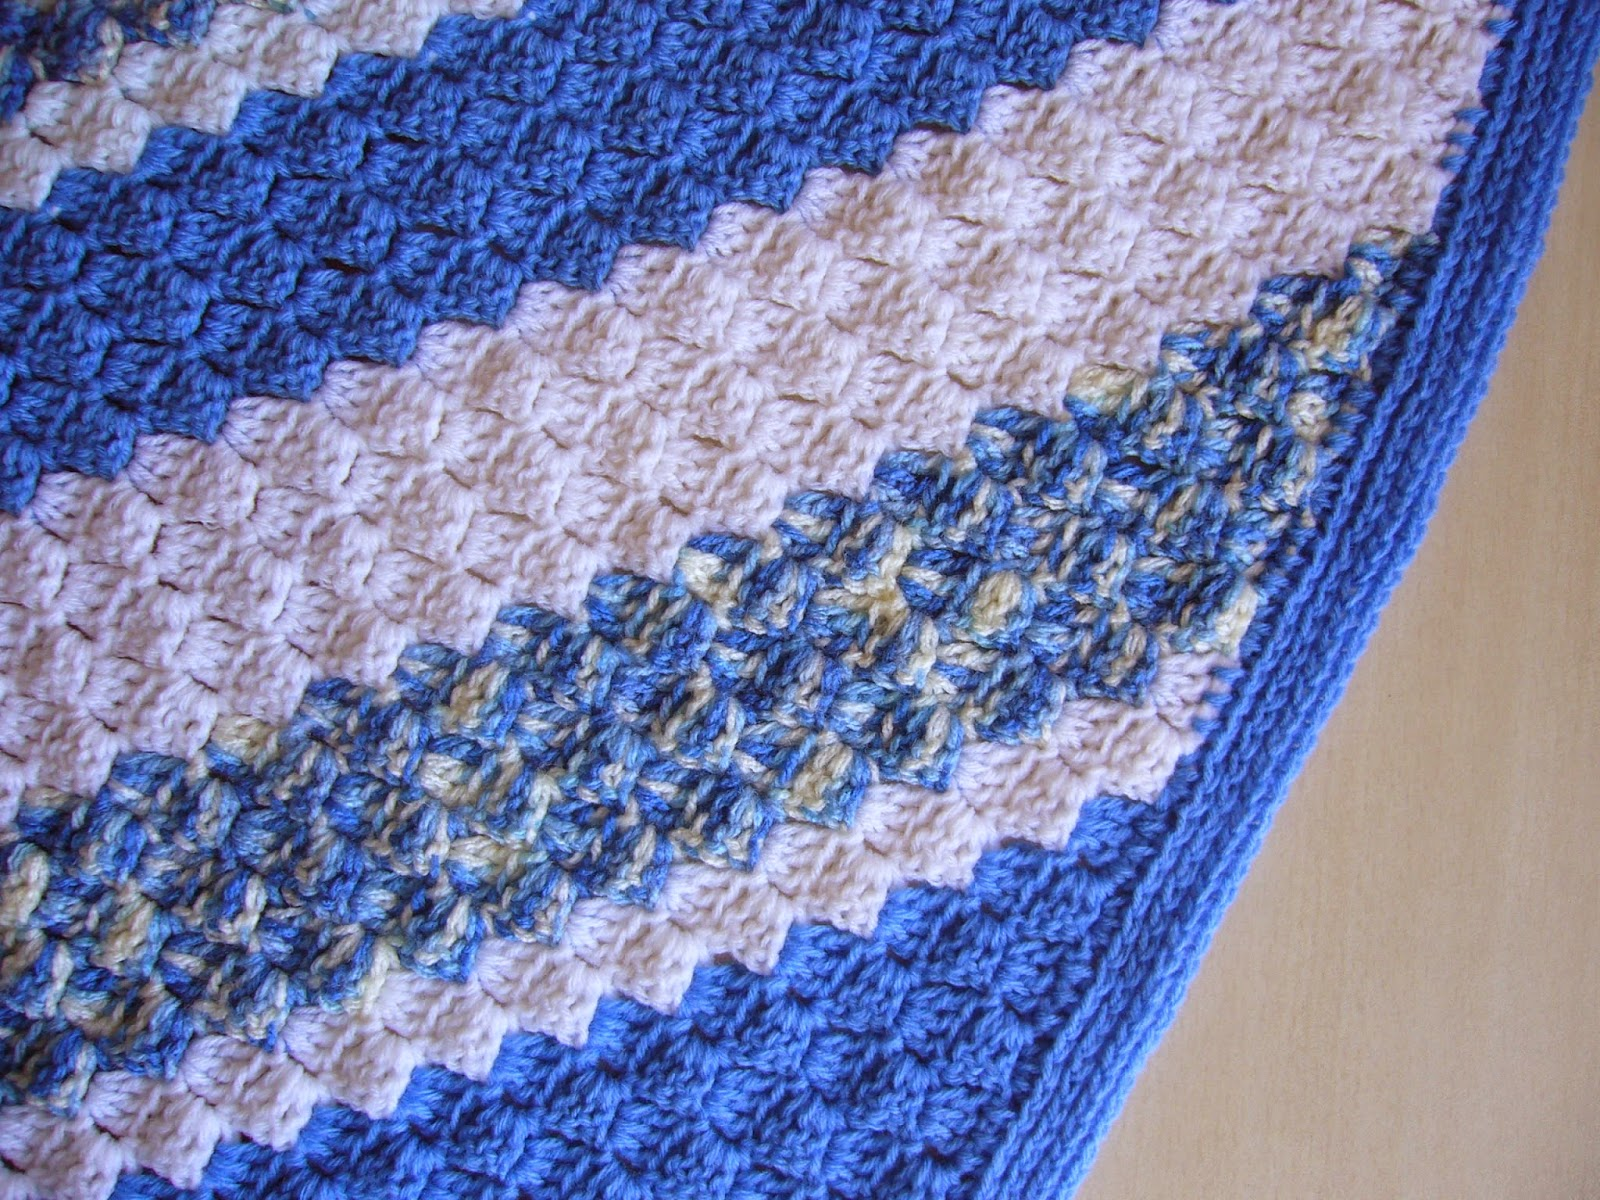 crochet c2c blanket edging